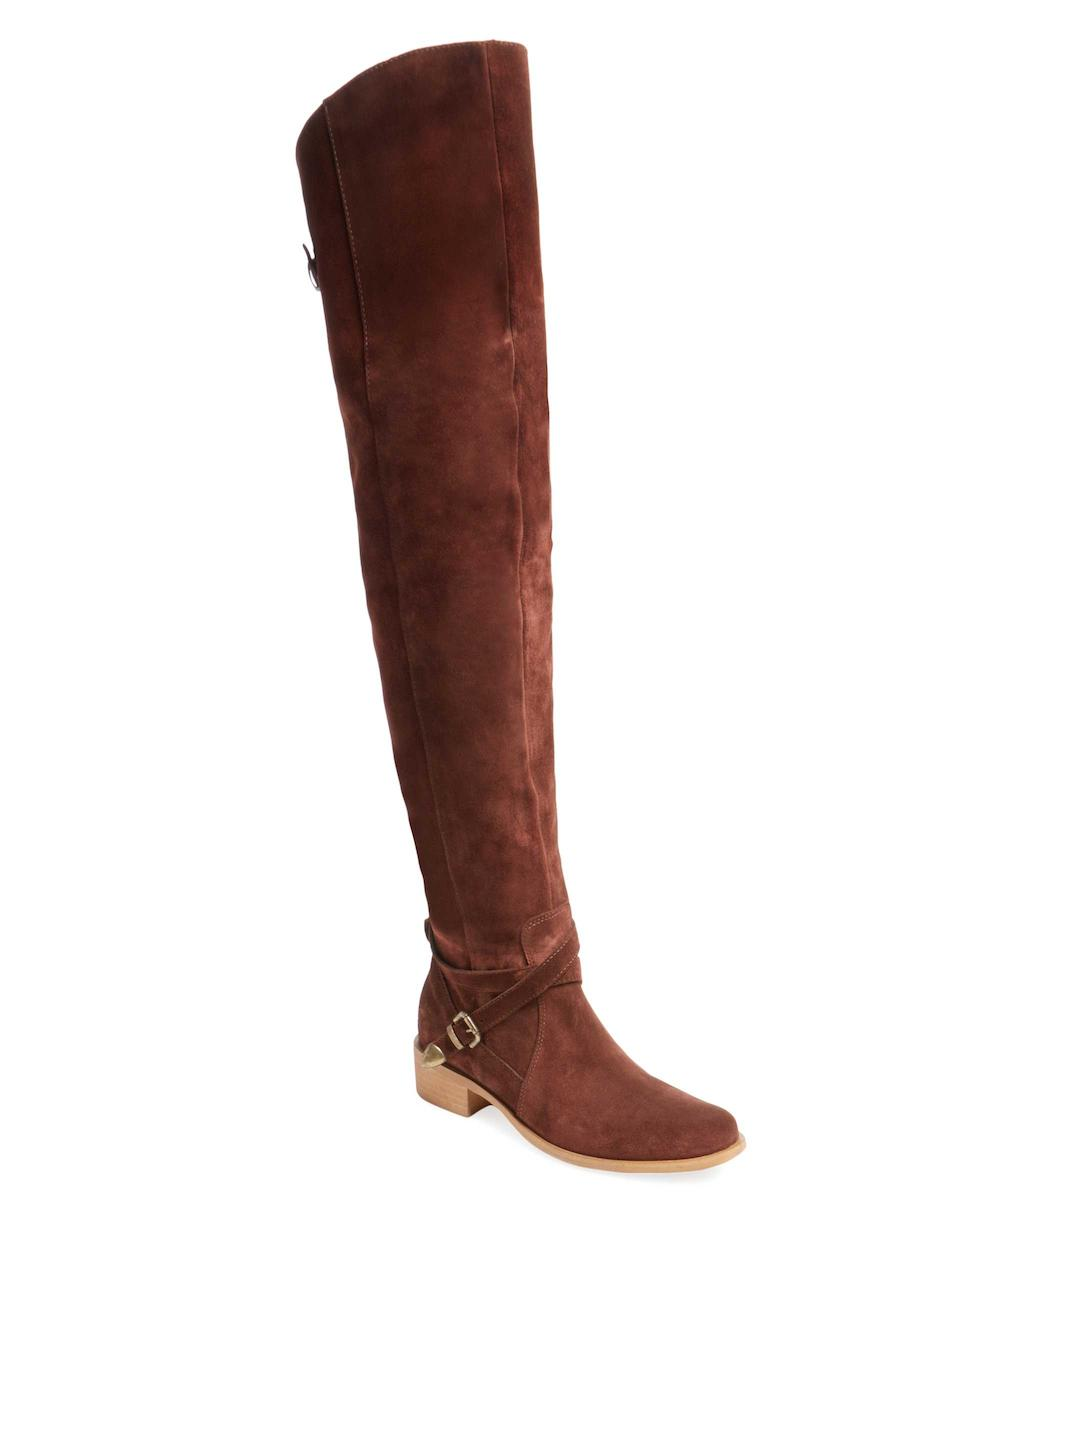 1673746946c0a9 Lyst - Charles David Gianna Over The Knee Boot in Brown